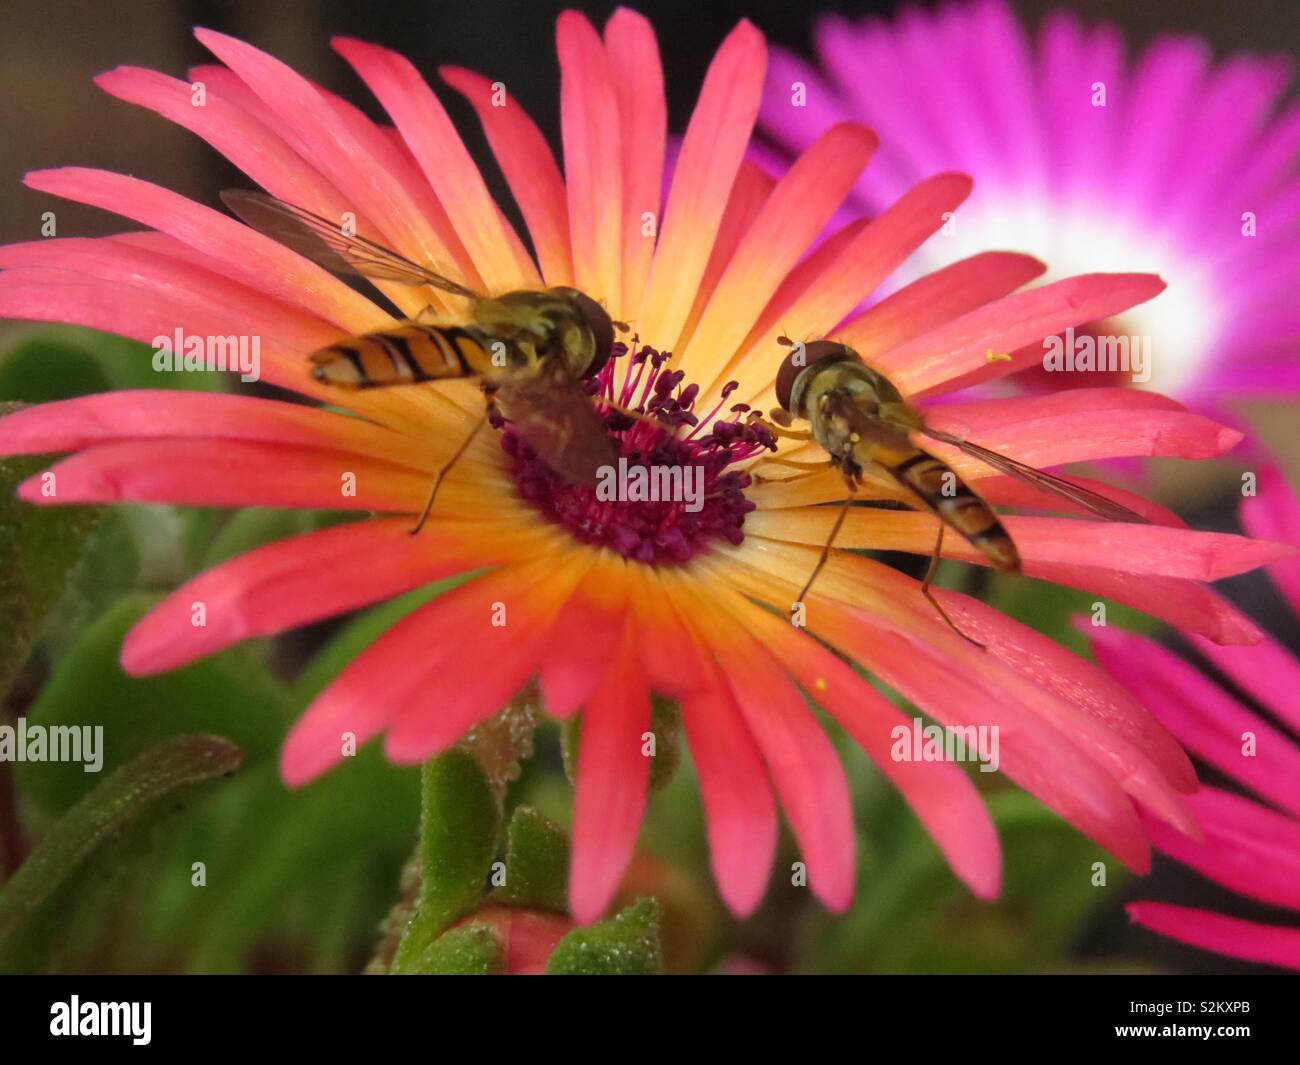 Insects feeding on nectar - Stock Image